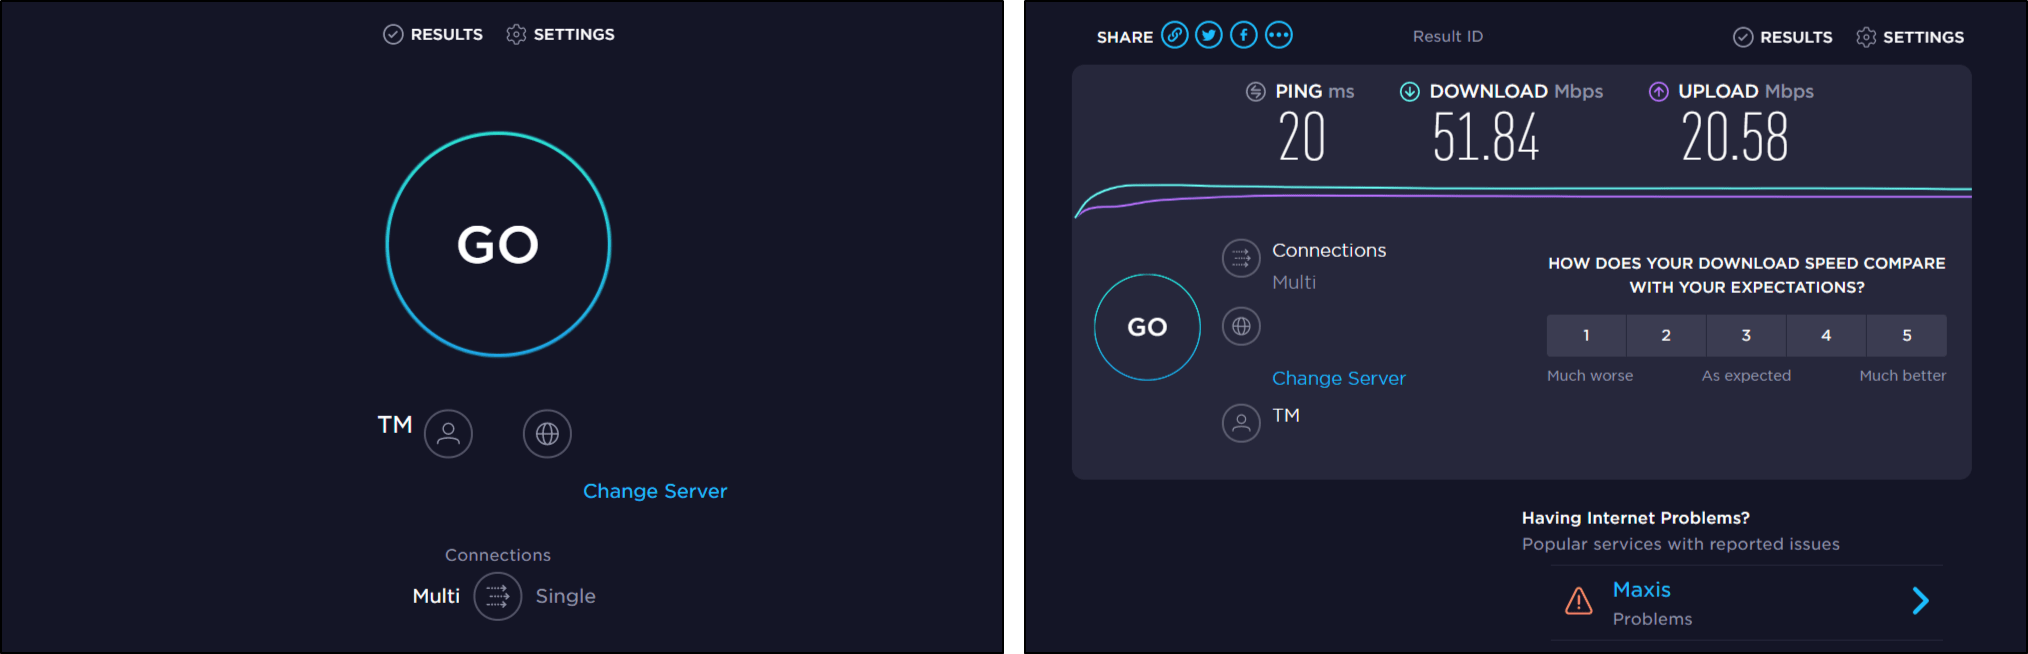 Check your Internet connection speed and stability or ping